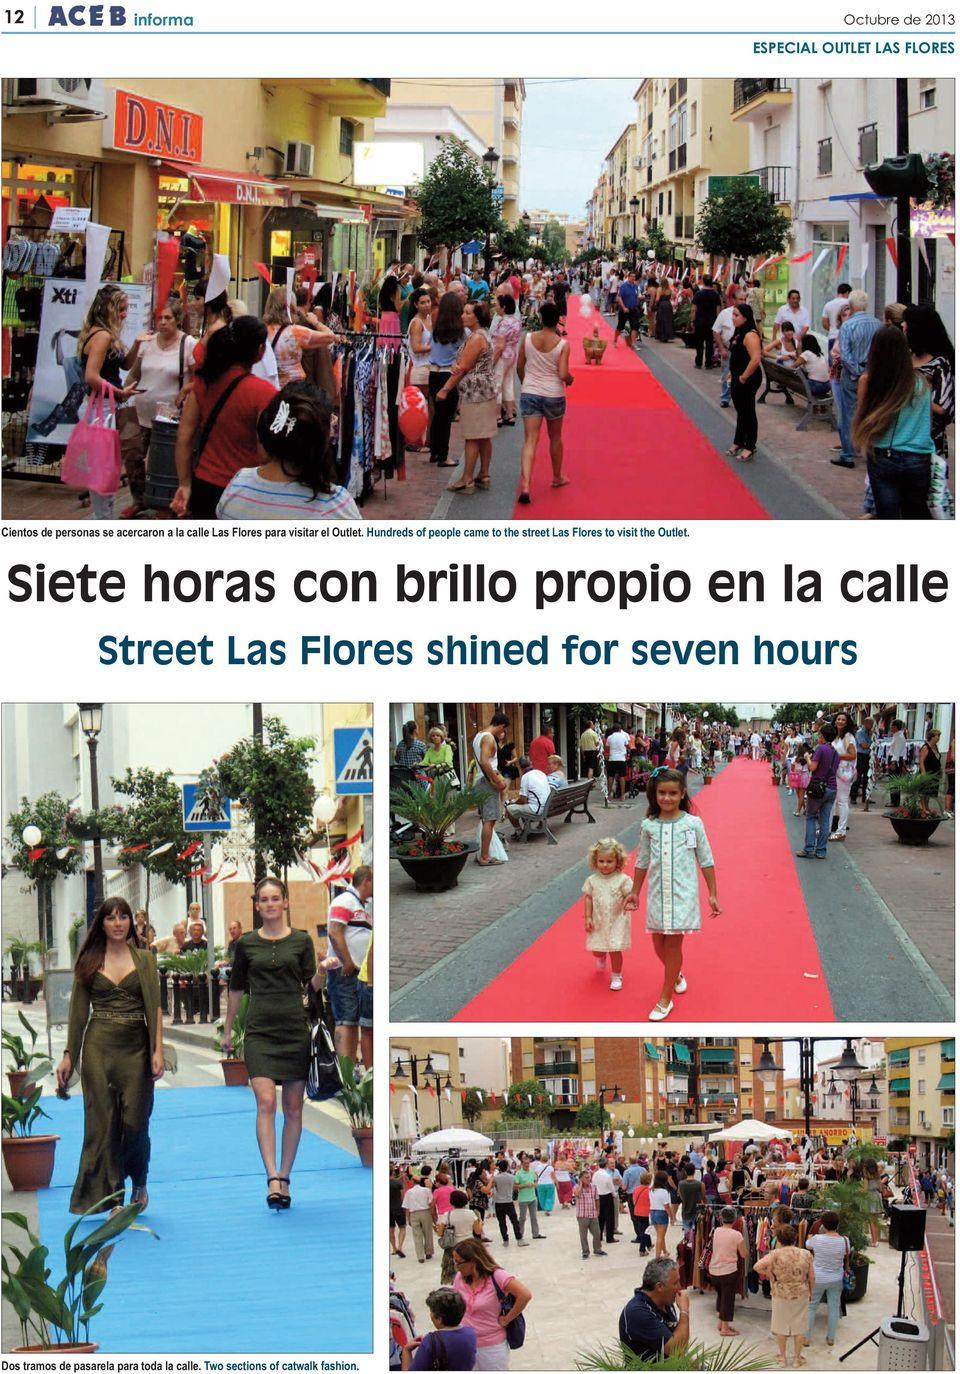 Hundreds of people came to the street Las Flores to visit the Outlet.